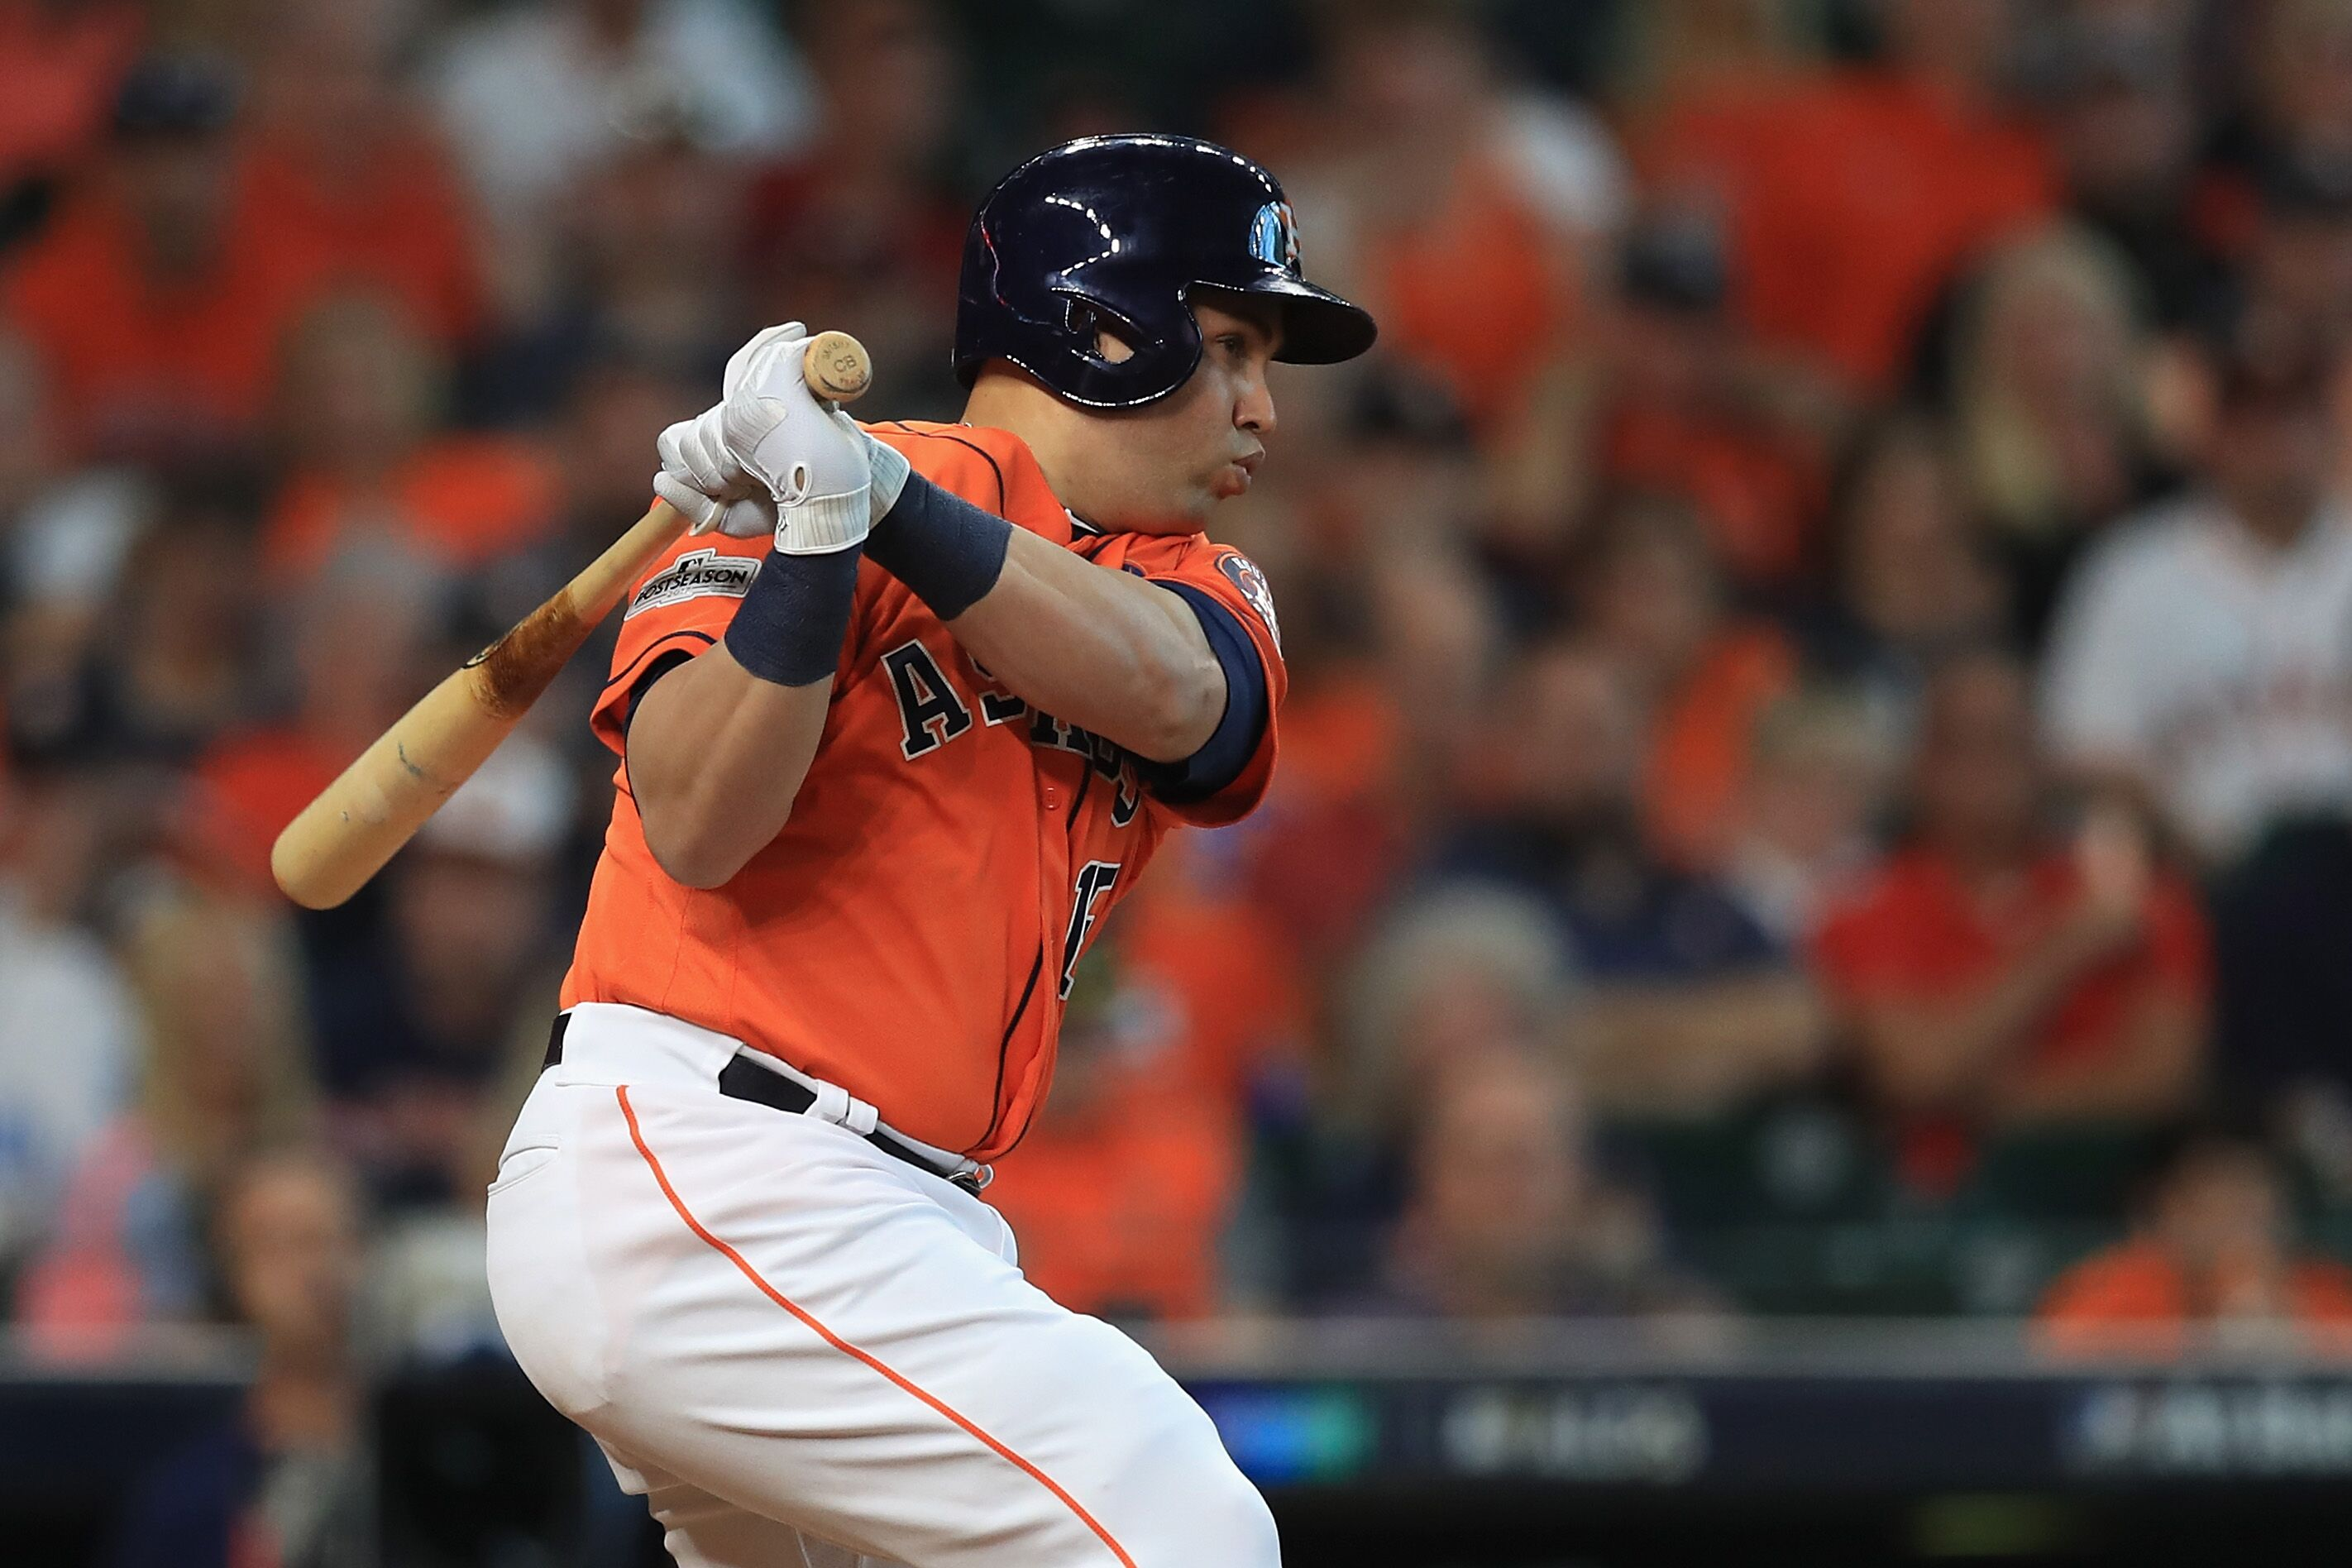 858441002-divisional-round-boston-red-sox-v-houston-astros-game-two.jpg